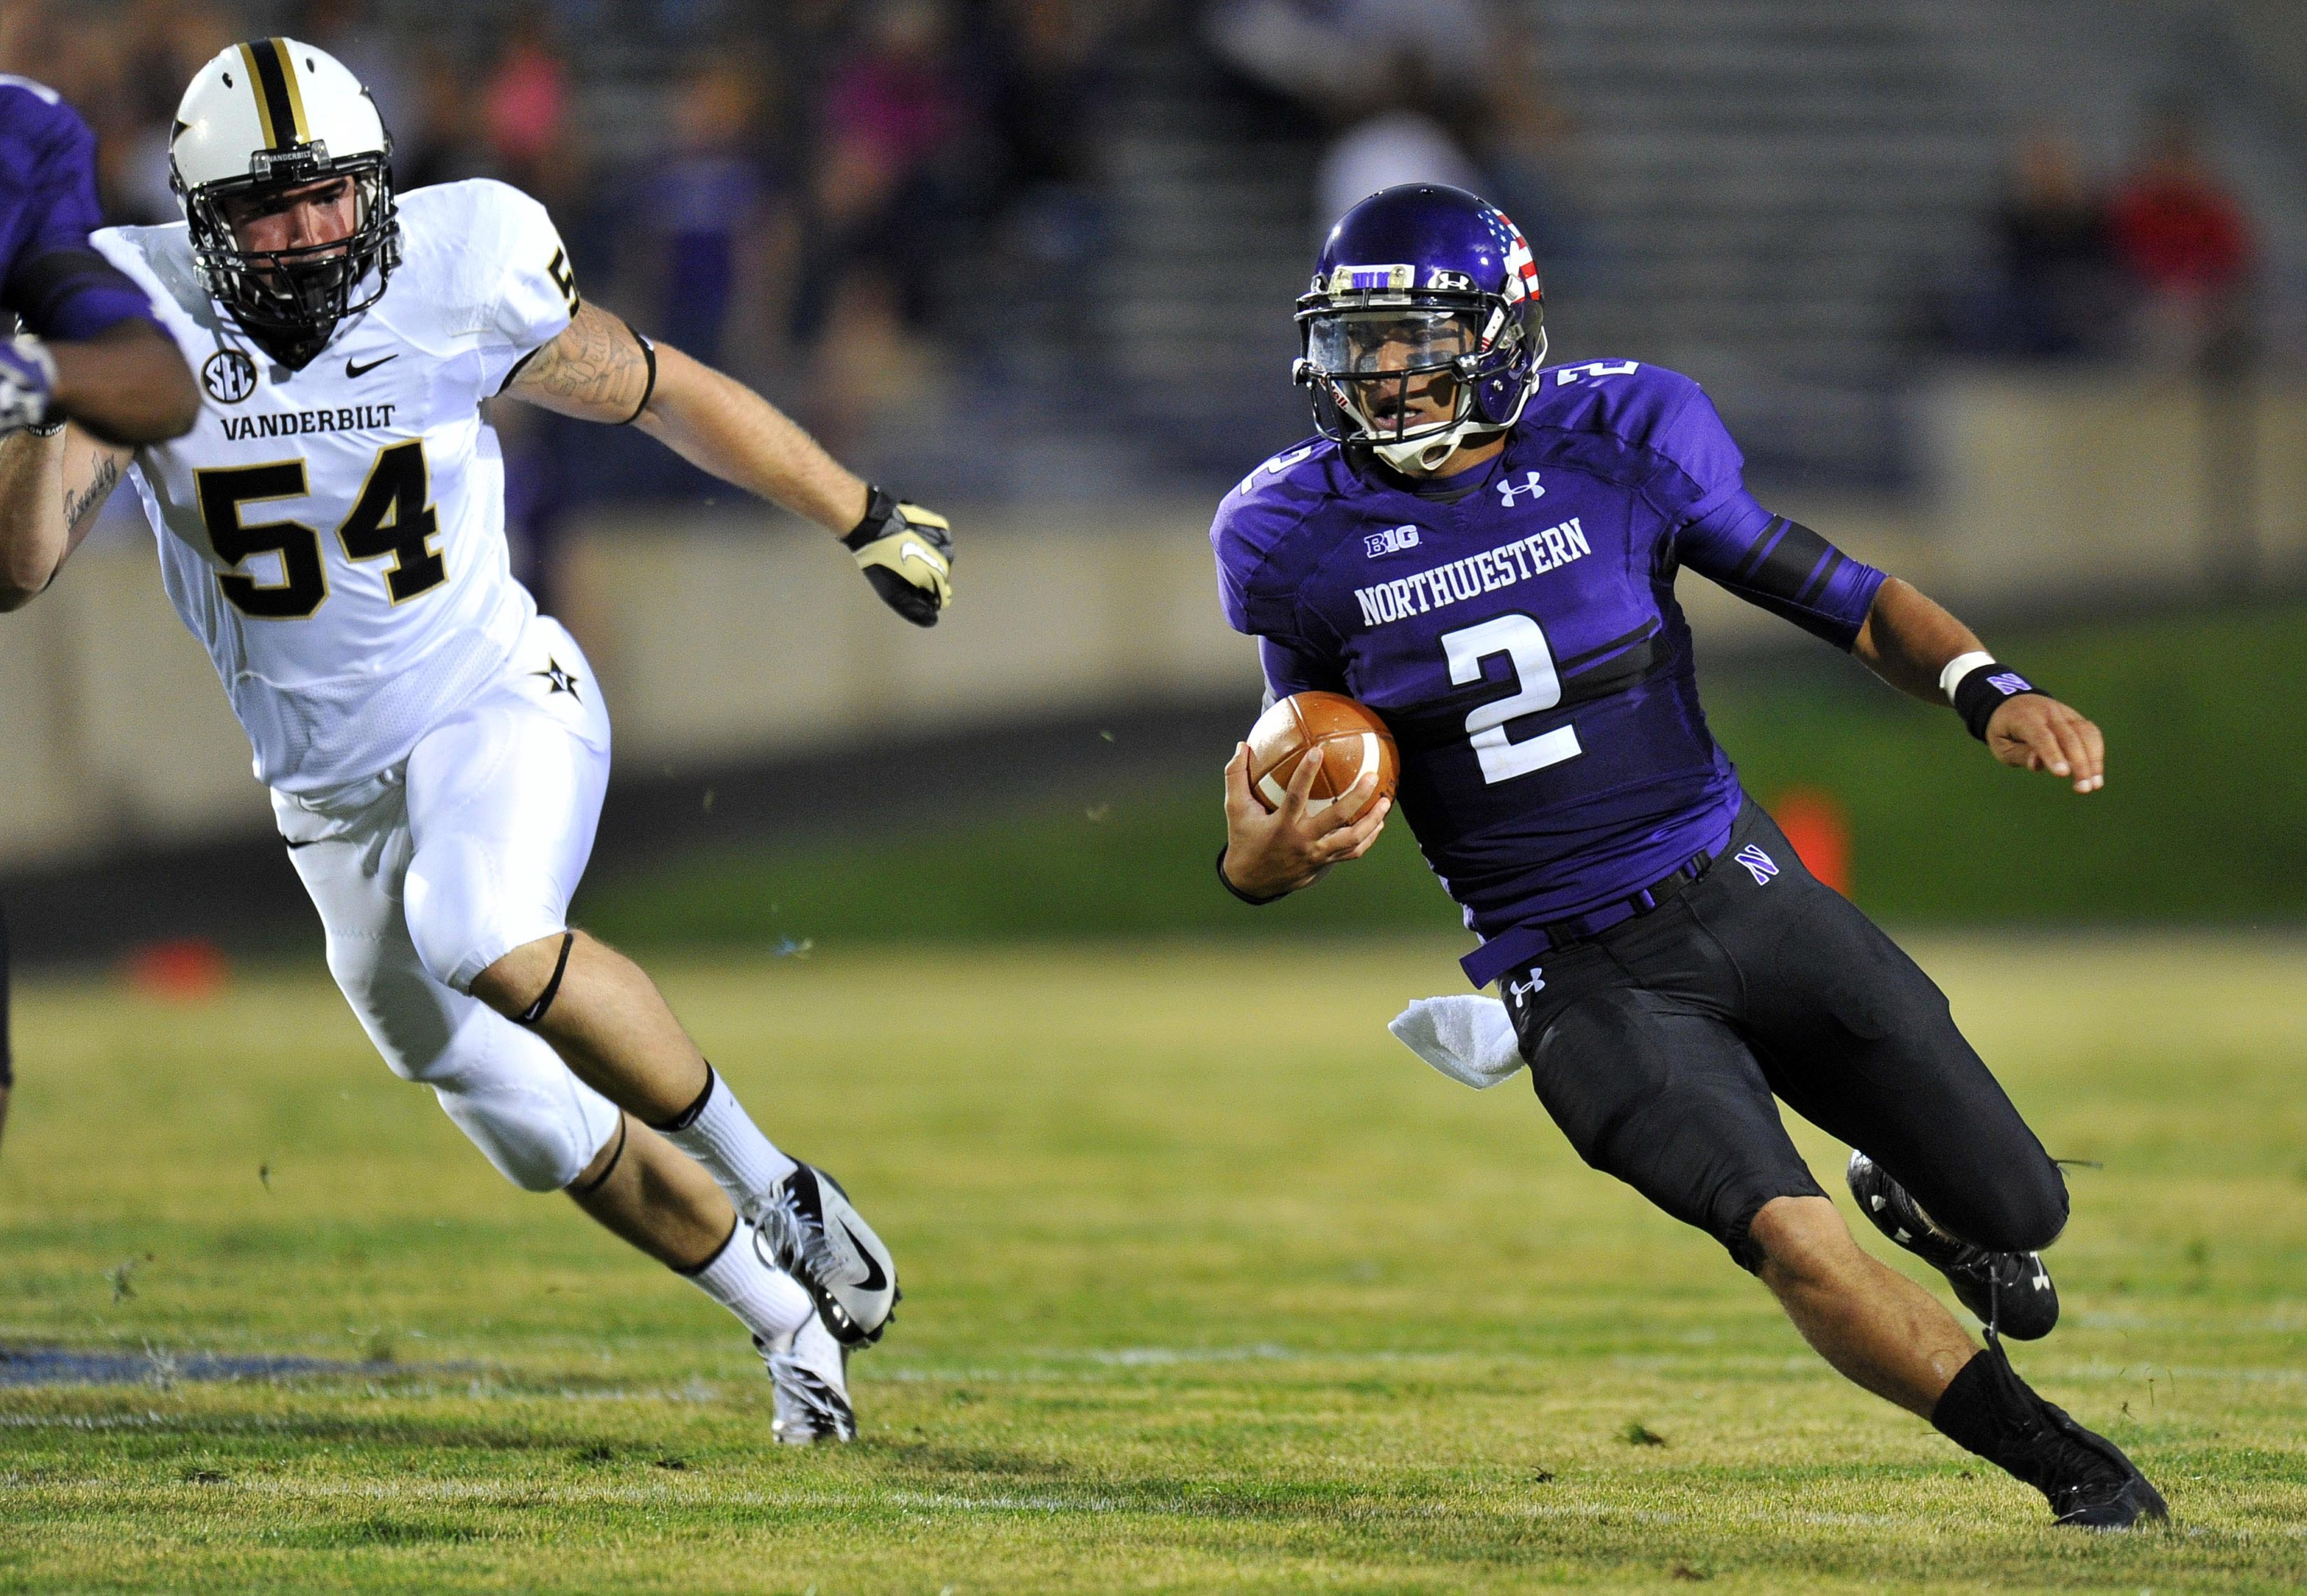 Sep 08, 2012; Evanston, IL, USA;  Northwestern Wildcats quarterback Kain Colter (2) runs the ball against the Vanderbilt Commodores during the first quarter at Ryan Field. Mandatory Credit: Mike DiNovo-US PRESSWIRE